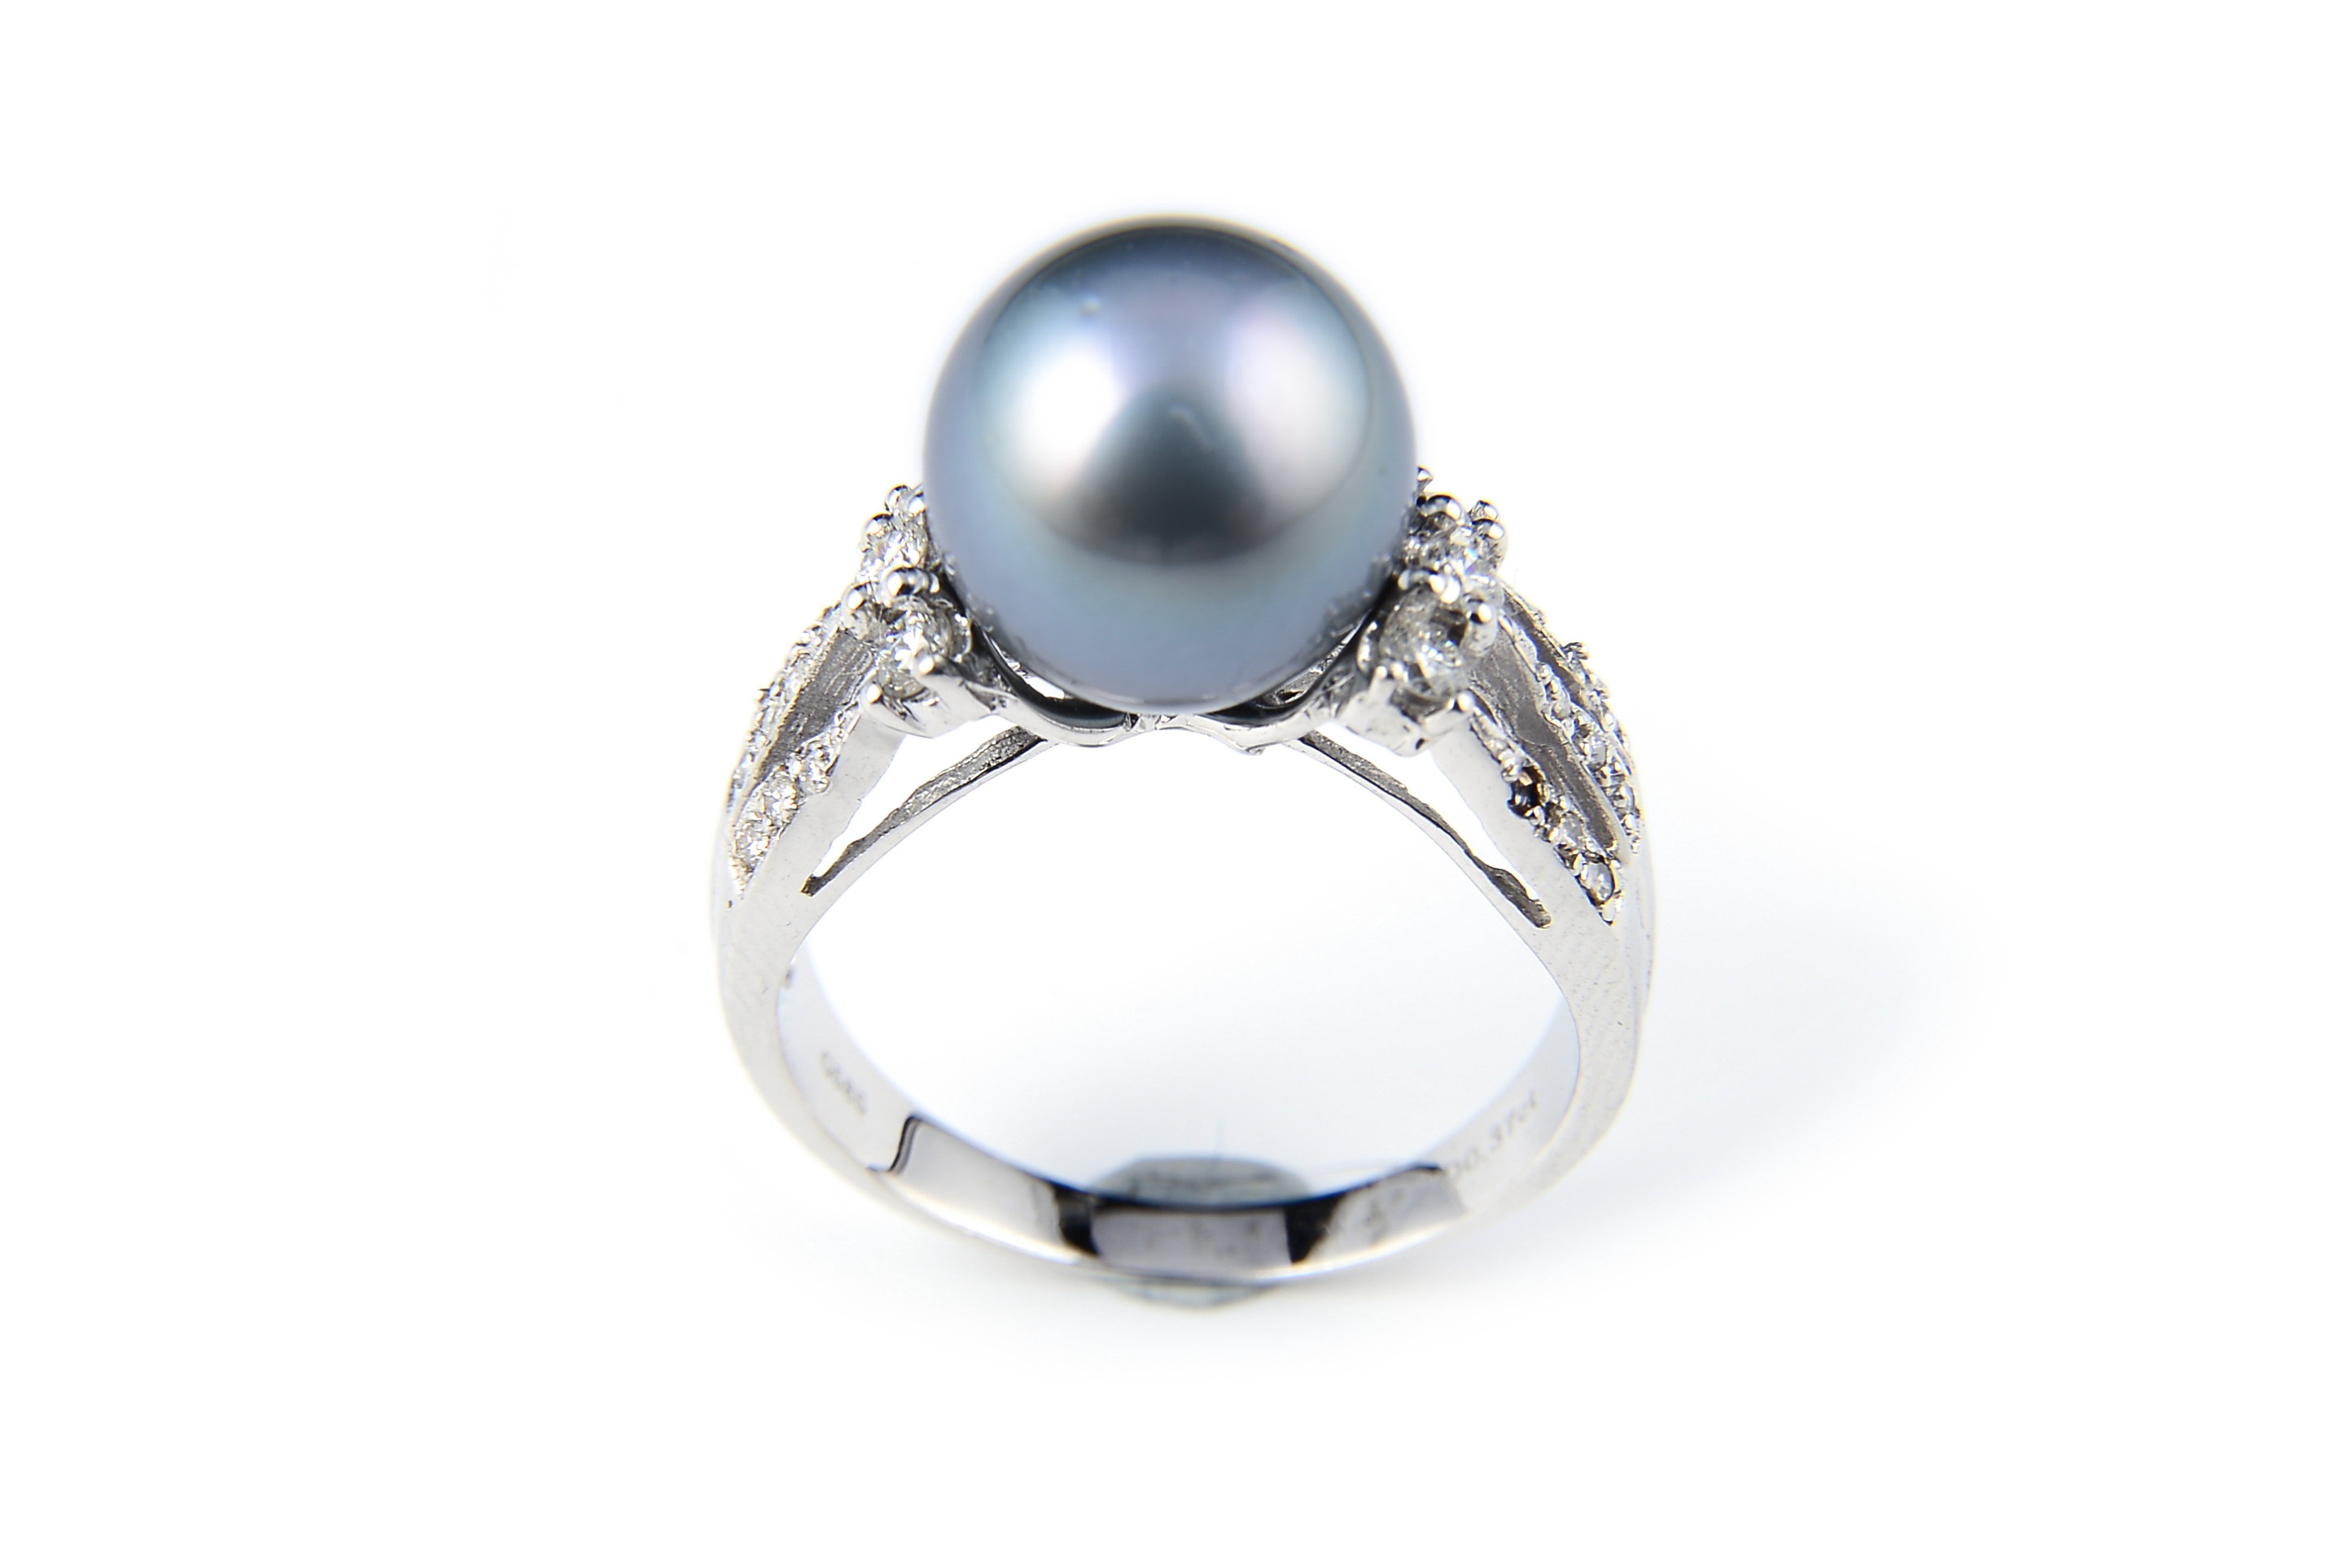 10.6mm AAA Black Tahitian Pearl Ring Accented With Diamonds -rg3